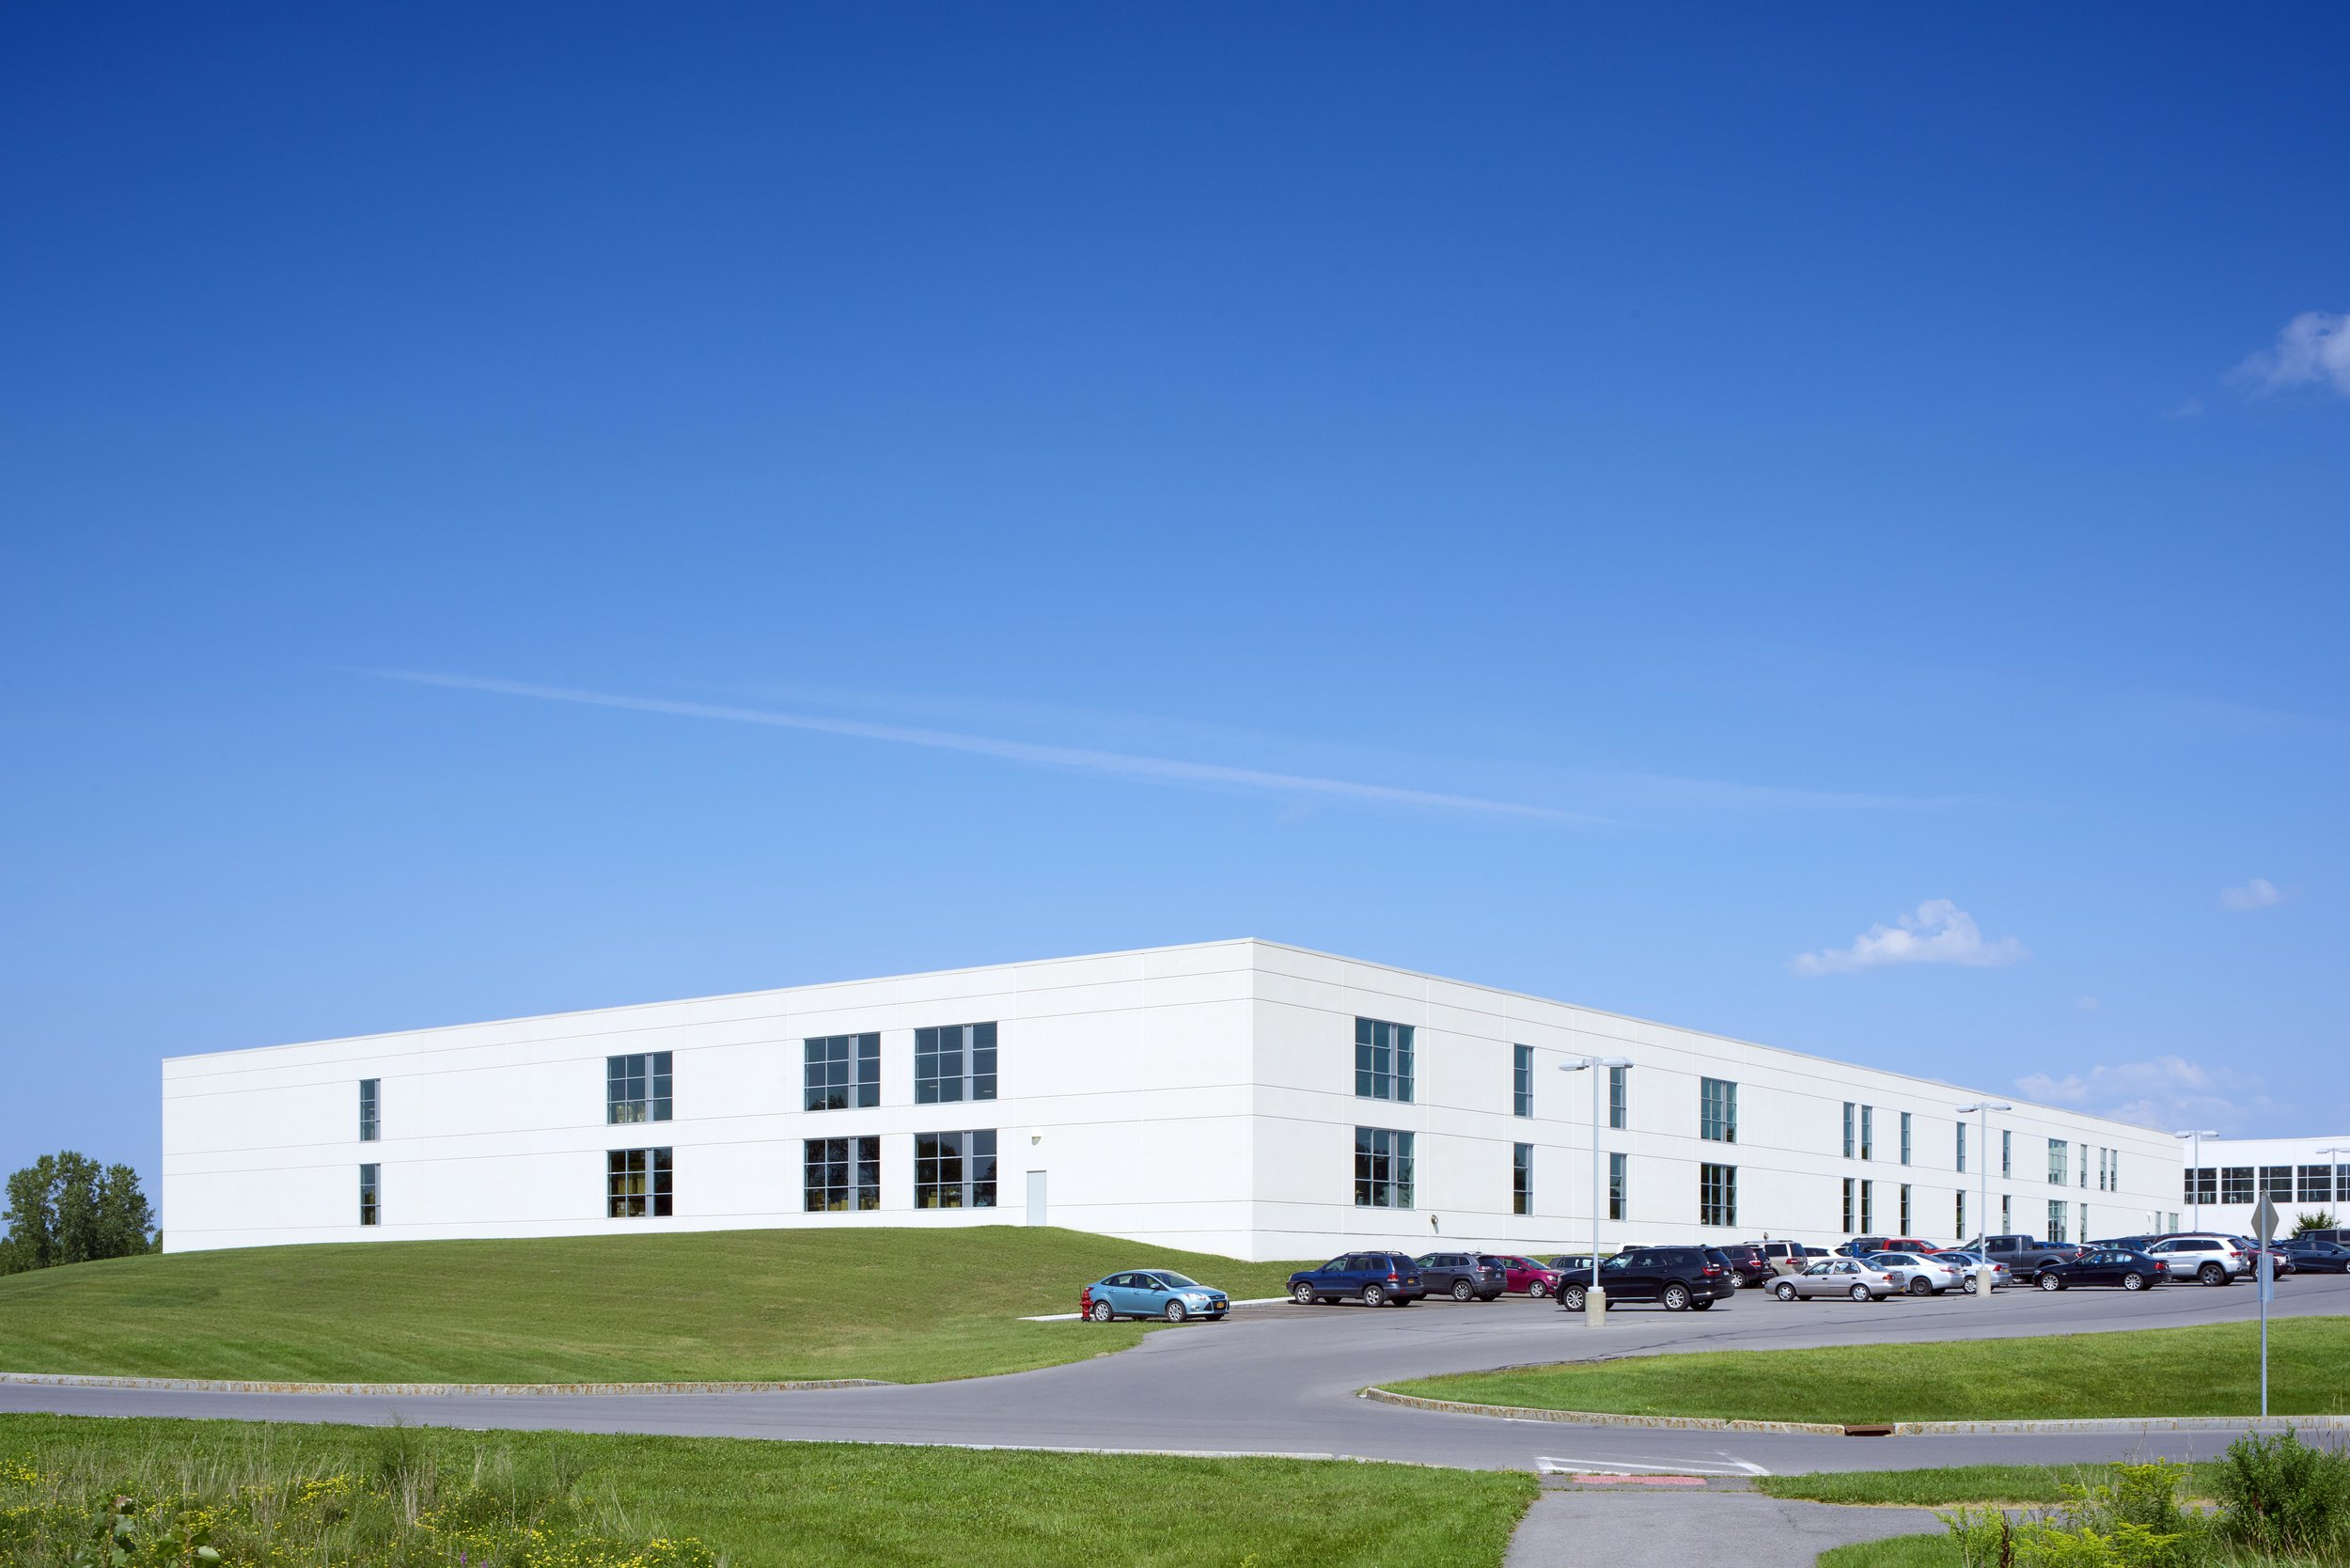 HILL-ROM / WELCH ALLYN<strong>Design/Build project to build a 105,000-square foot addition to an existing 350,000 SF manufacturing facility.</strong>